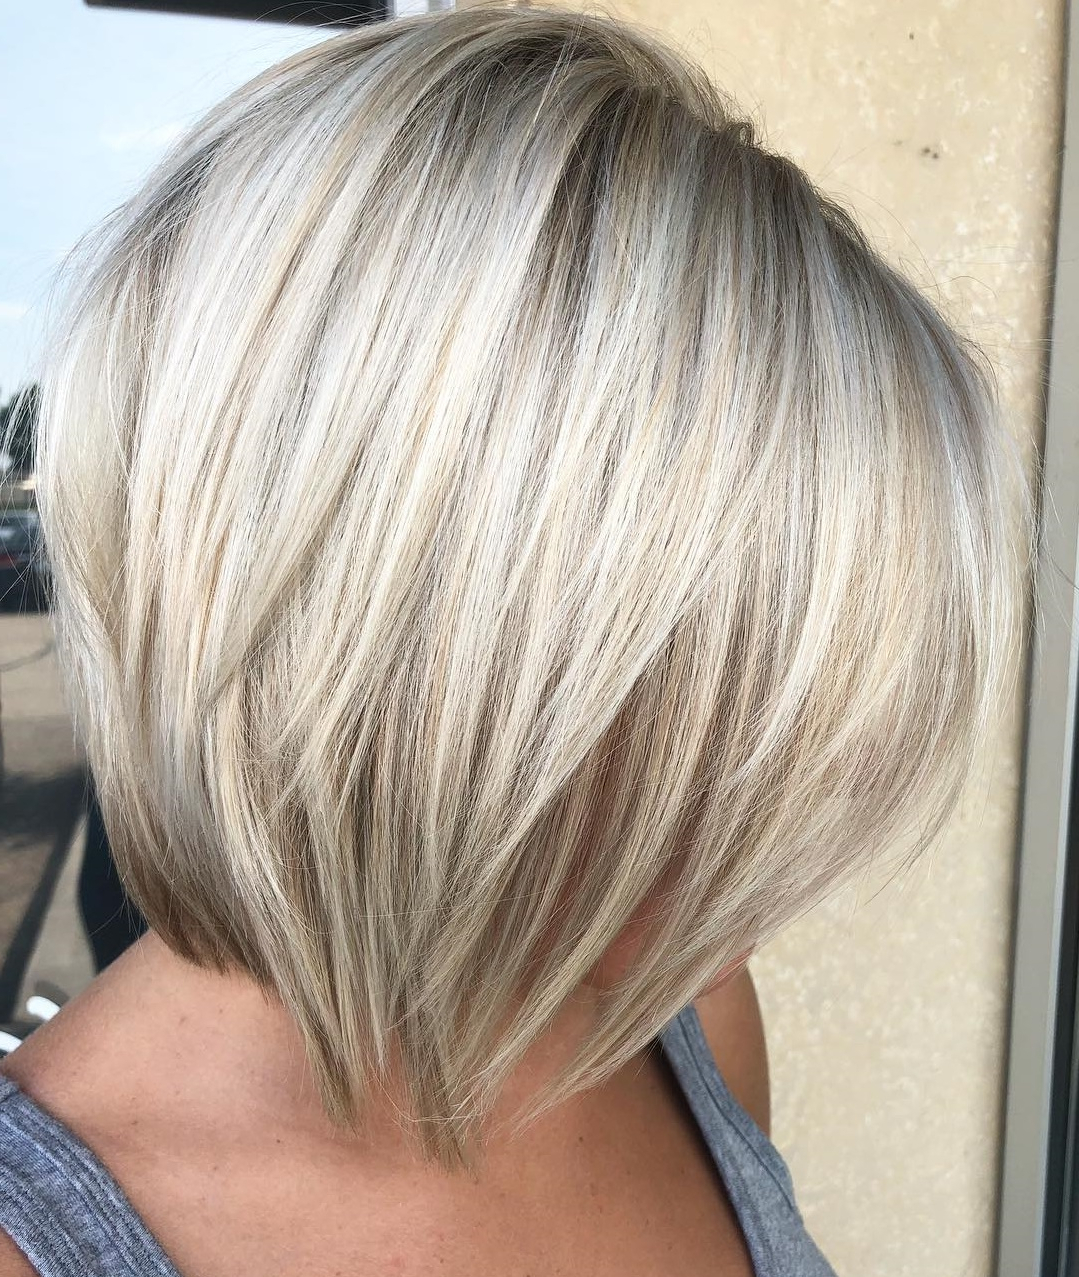 Best And Newest Textured Classic Bob Hairstyles Regarding 45 Short Hairstyles For Fine Hair To Rock In (View 8 of 20)